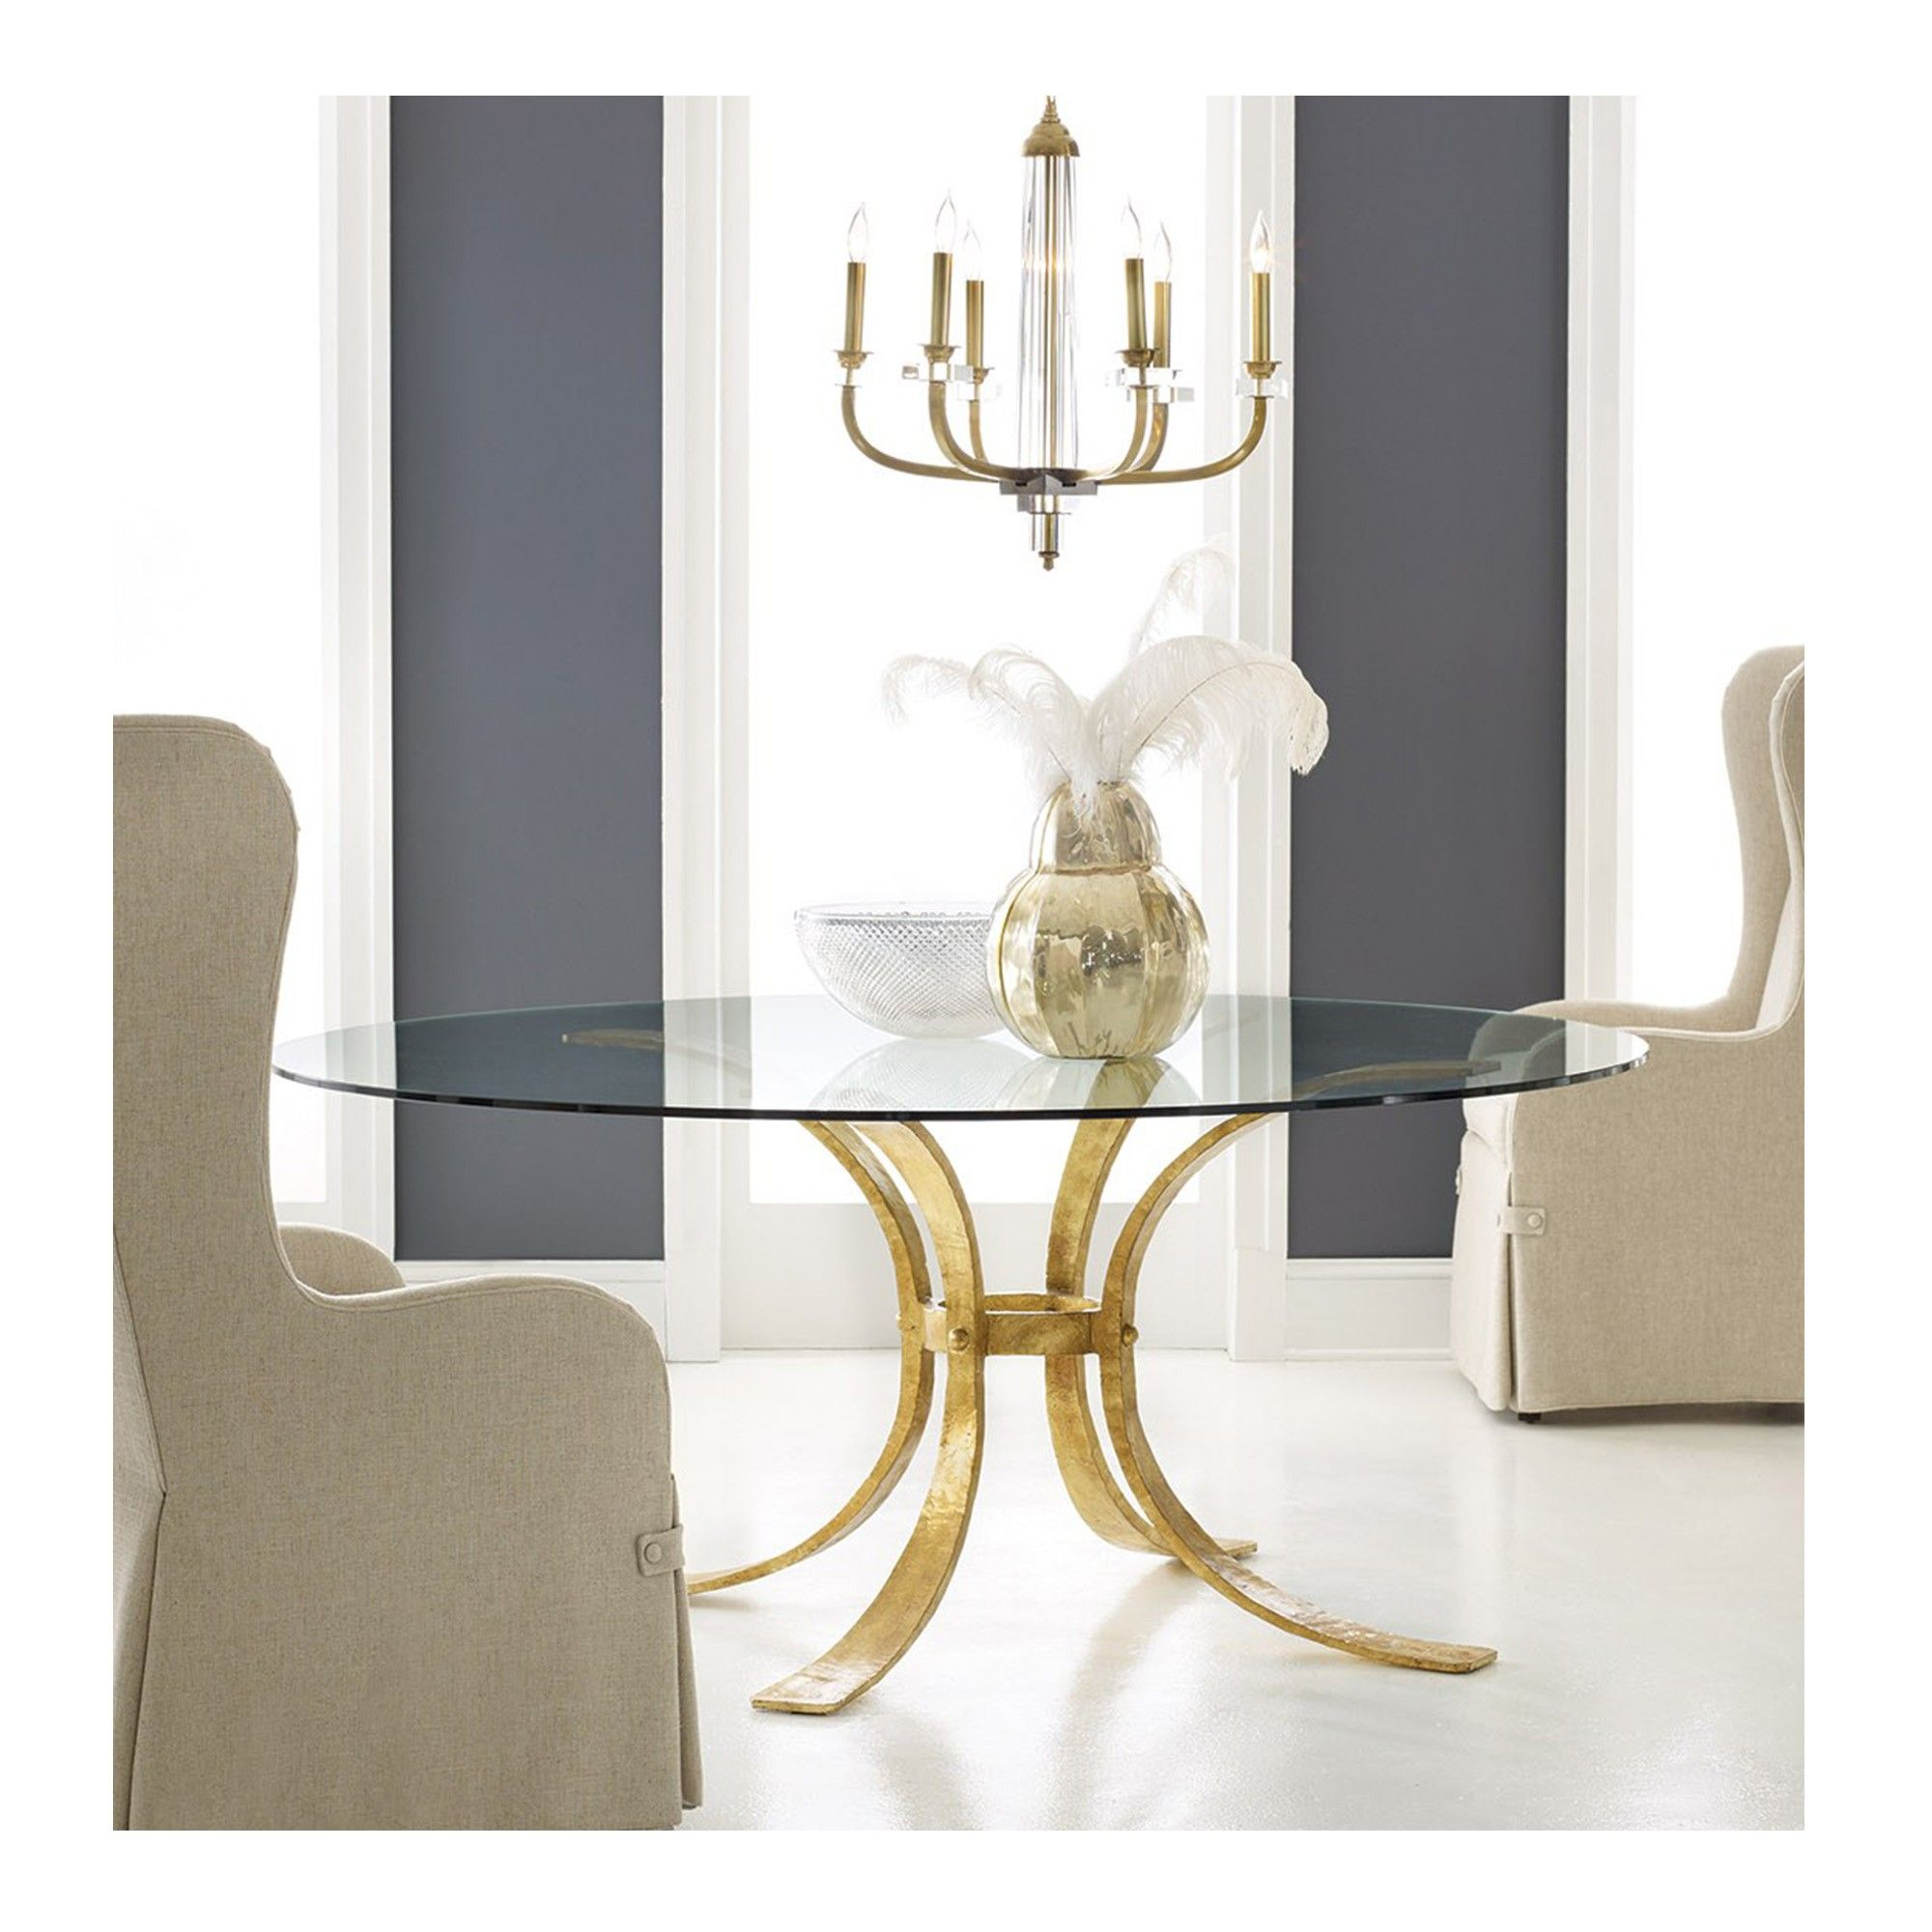 Retro Gilded Dining Table Gold Round Modern History Mh780f01